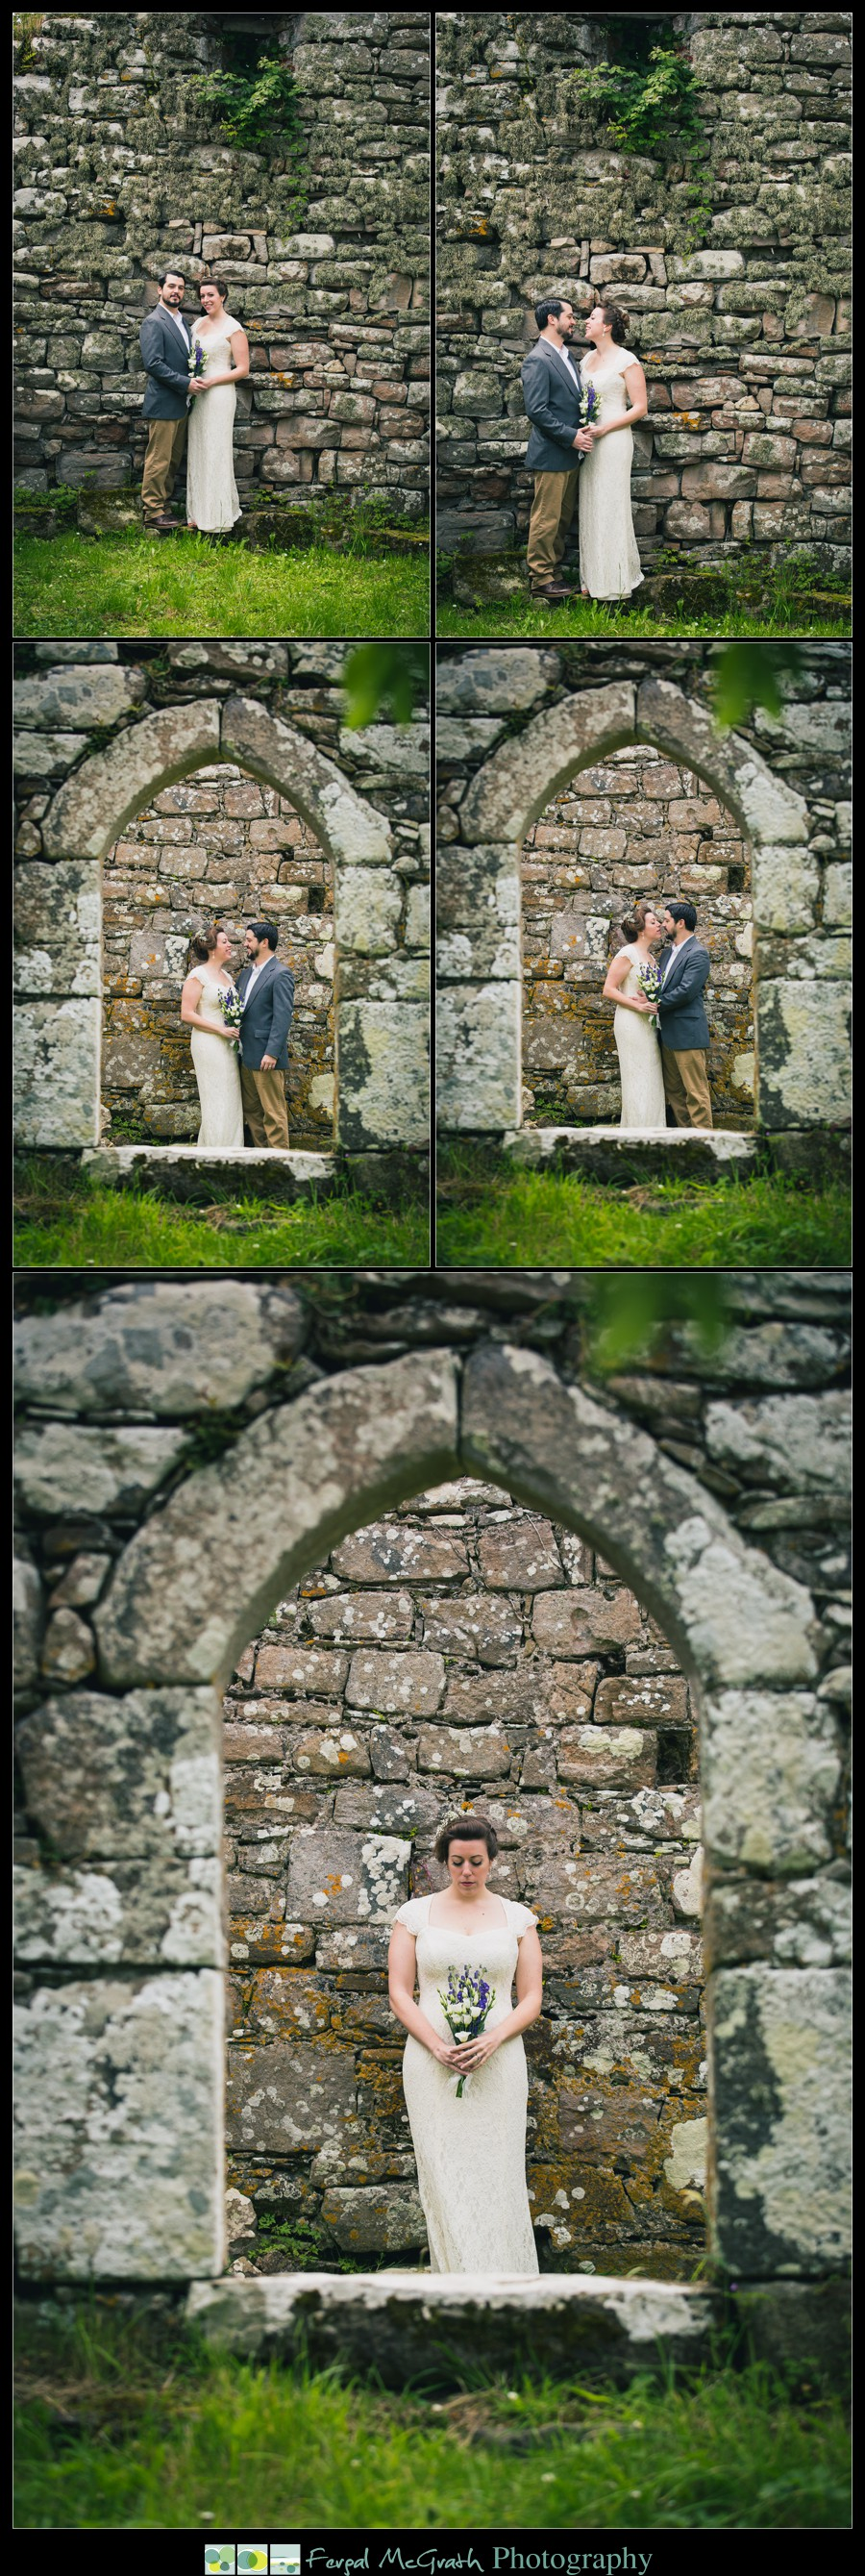 Donegal Wedding Photography bride and groom wedding photos by an old church ruin in donegal